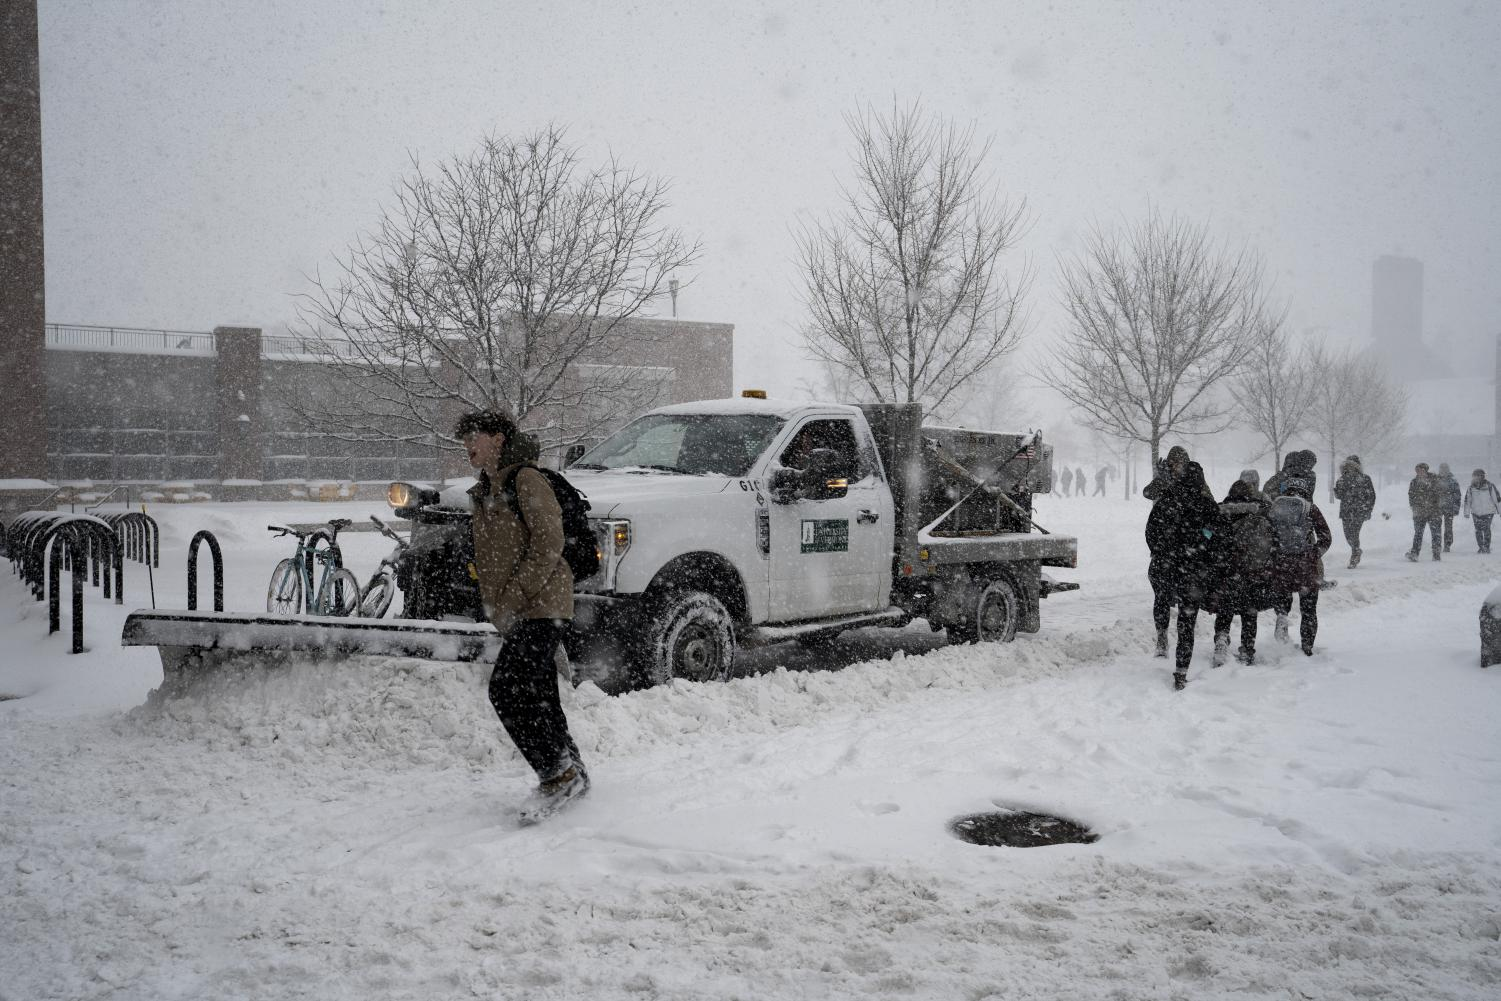 A UVM Physical Plant employee plows snow with a pickup truck as students navigate around him, Feb. 8. UVM's snow removal equipment is housed under the old bleachers at Centennial Field.